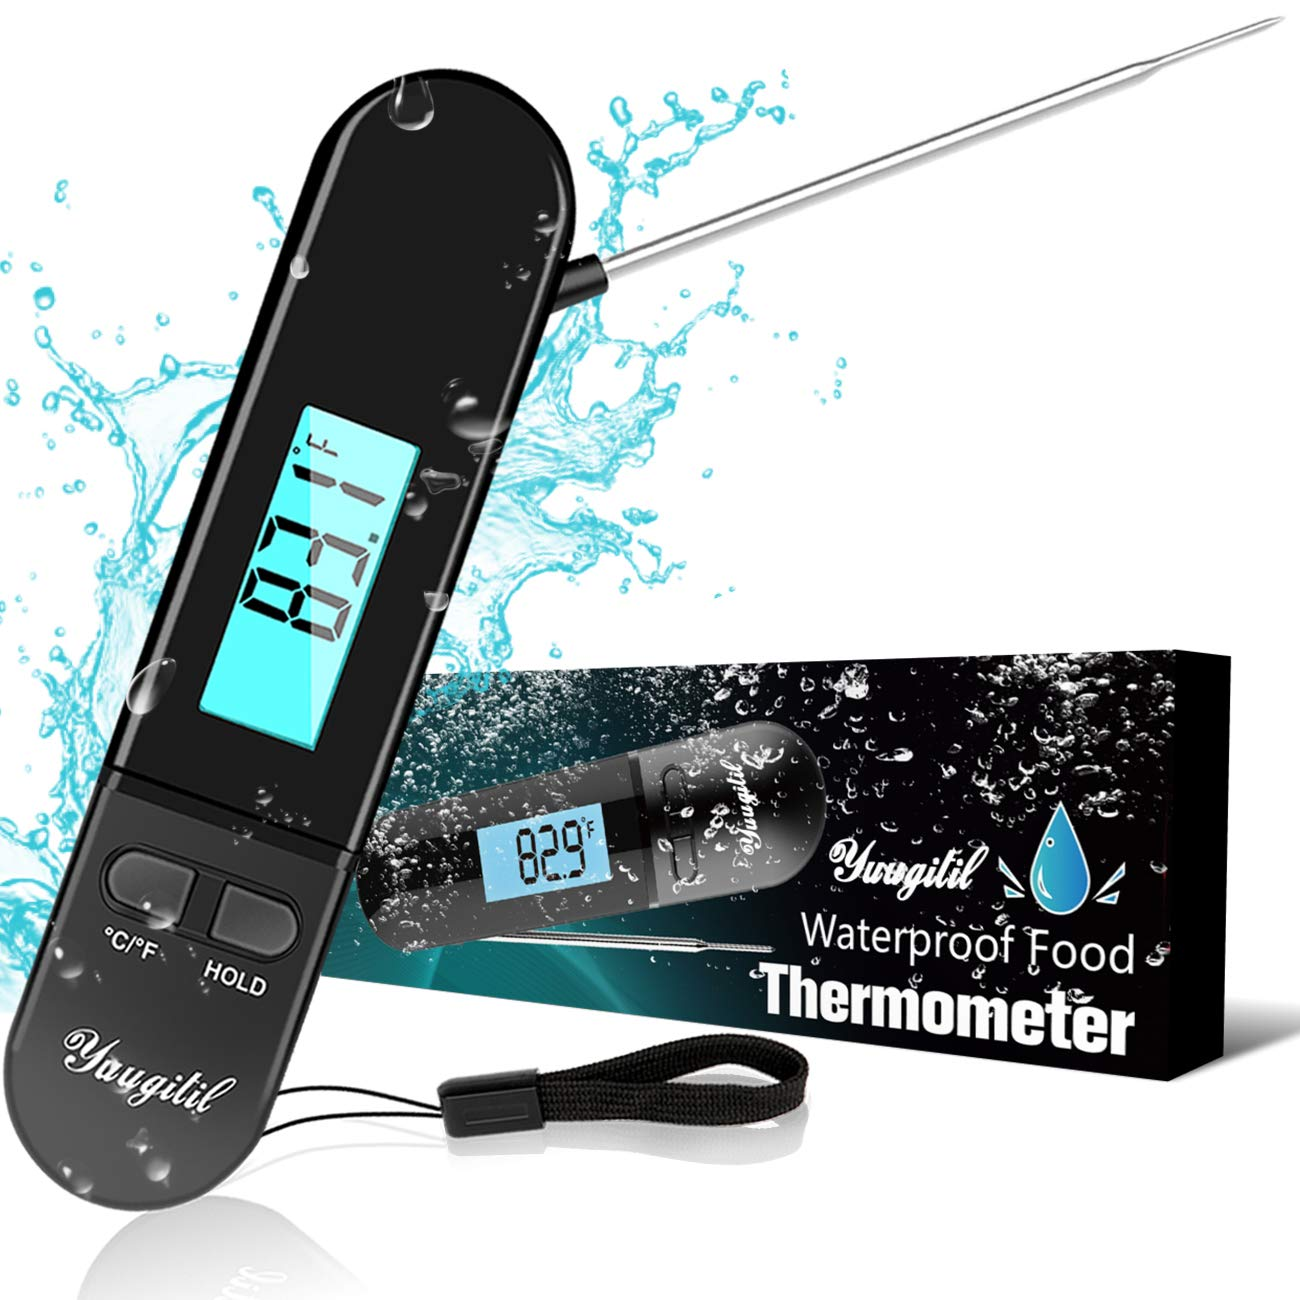 Meat Thermometer Instant Read for Grilling, Cooking Thermometer for Liquids YUUGITIL Upgrade Waterproof Kitchen Digital Food Thermometer, Large Backlit Screen, 235° Rotating Probe for BBQ/Candy/Baking